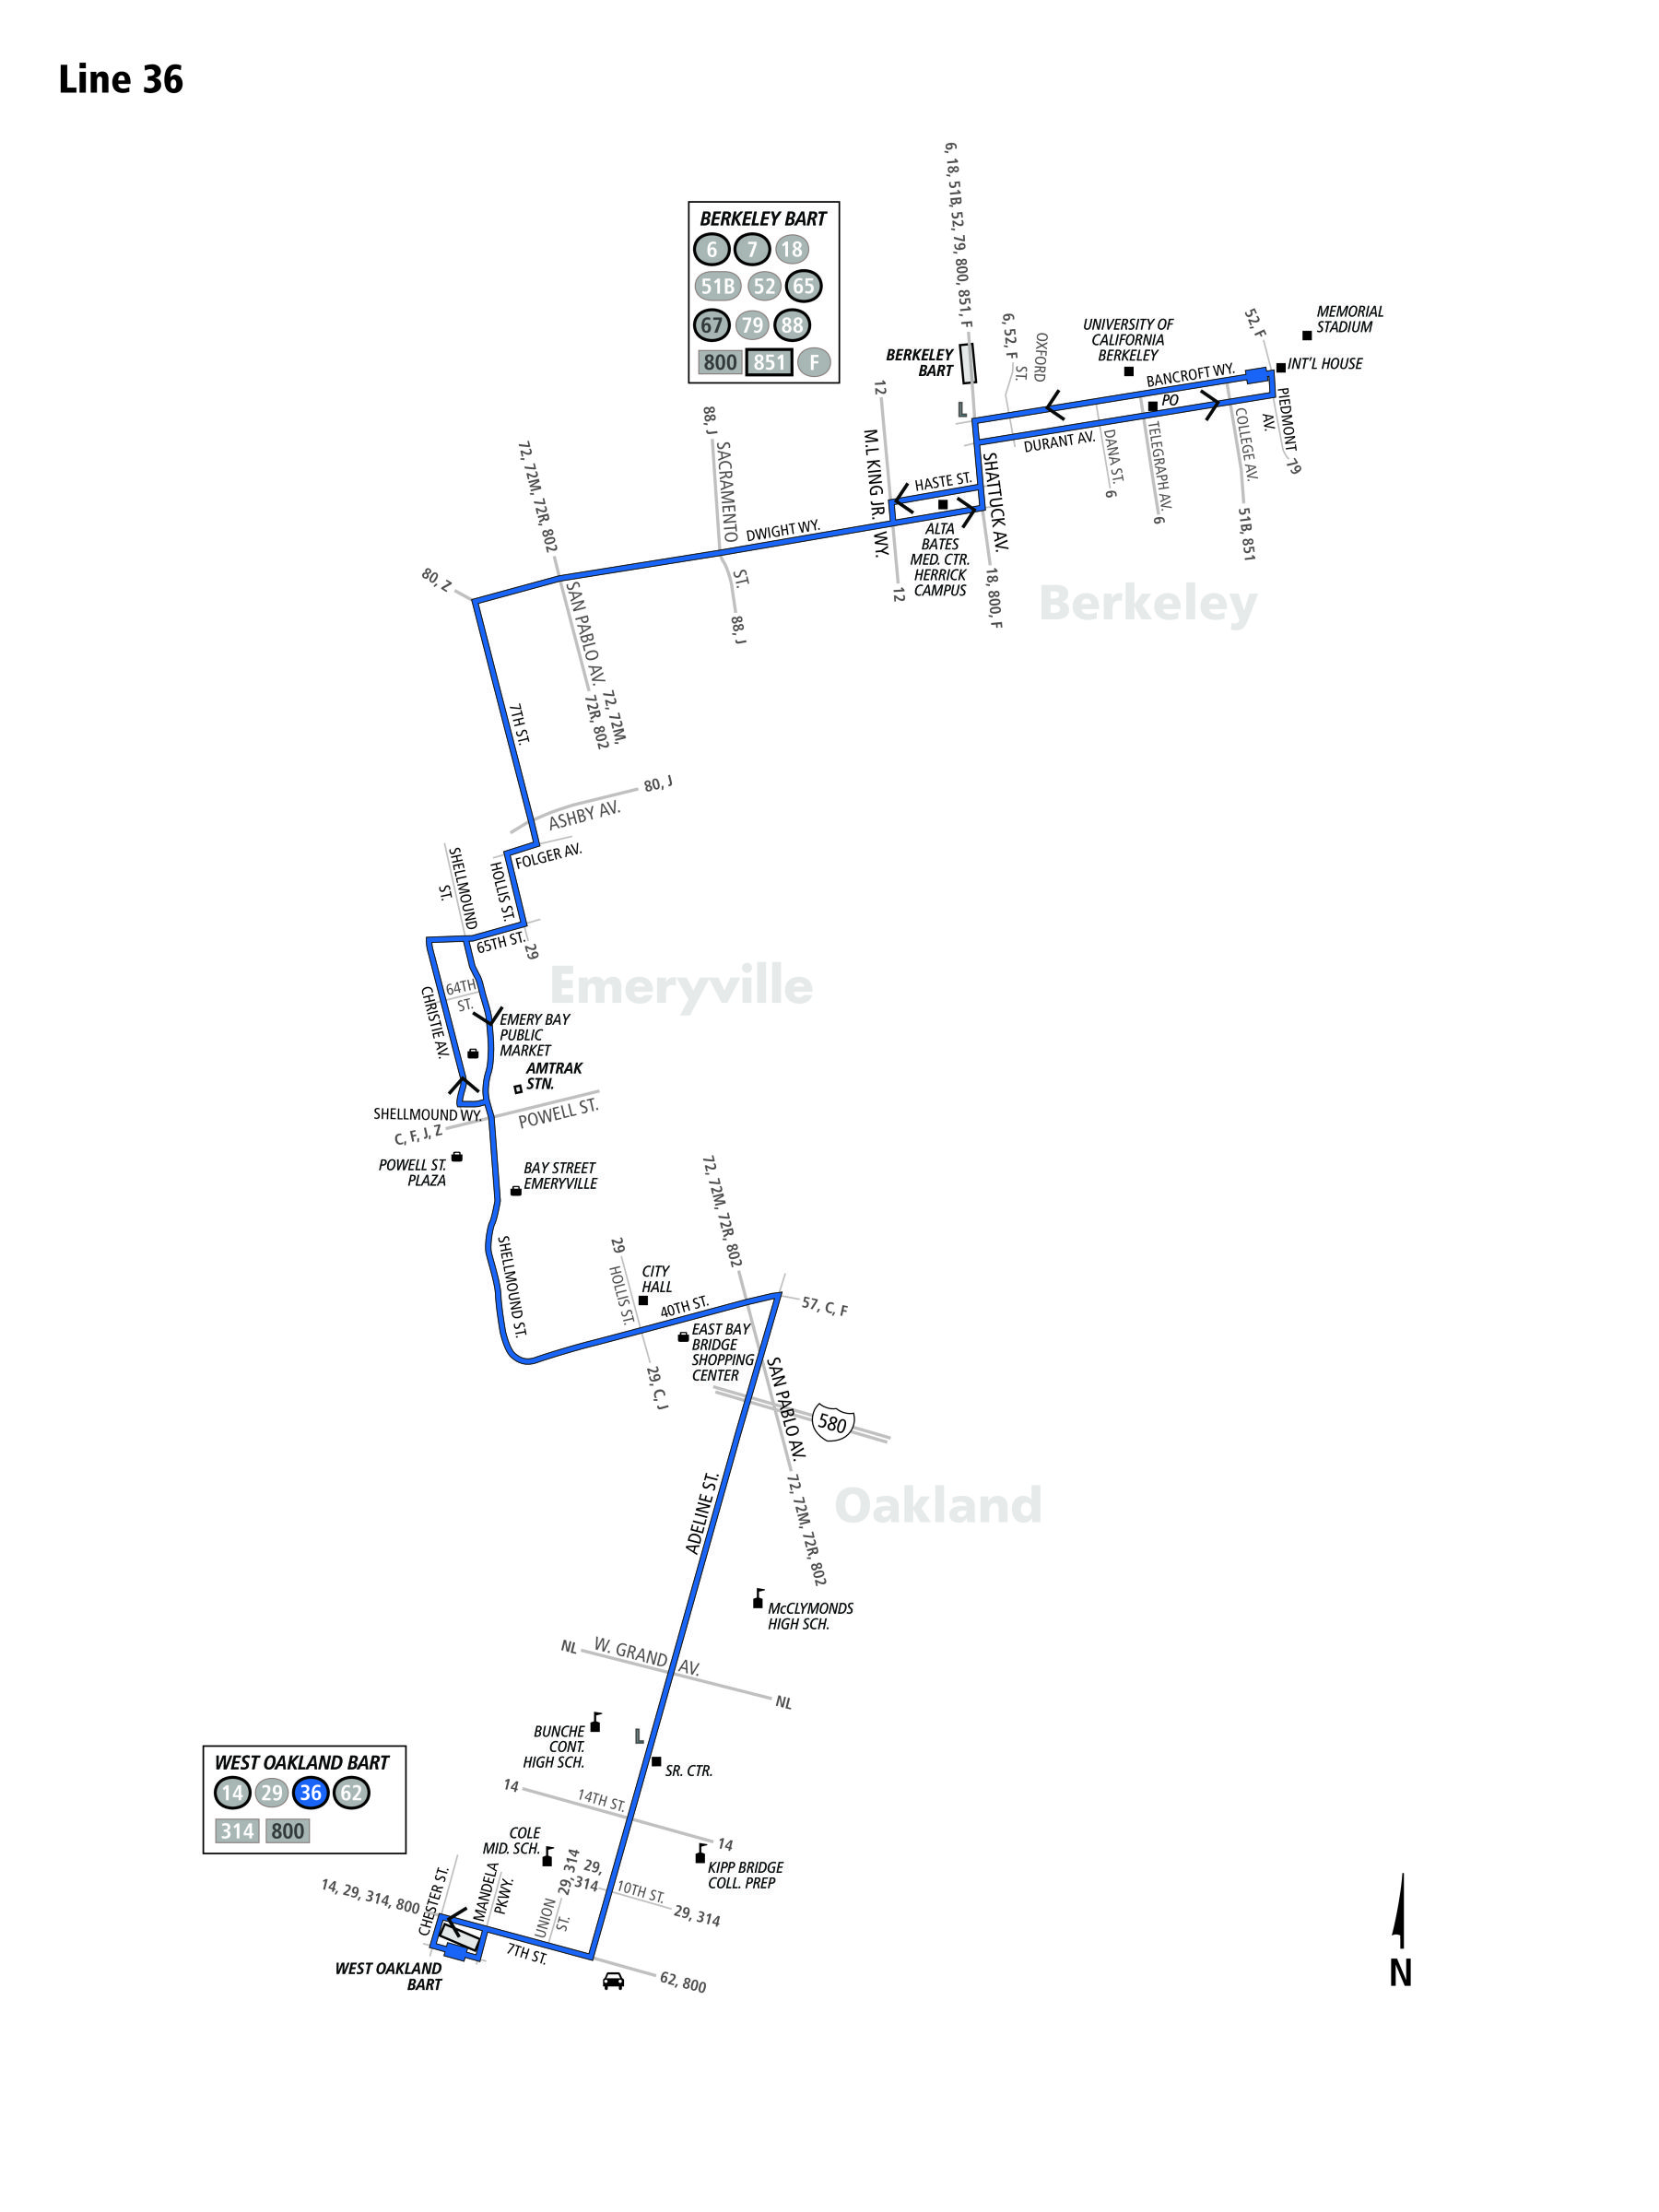 route_36  Berkerley Bus Route Ac Transit Map on